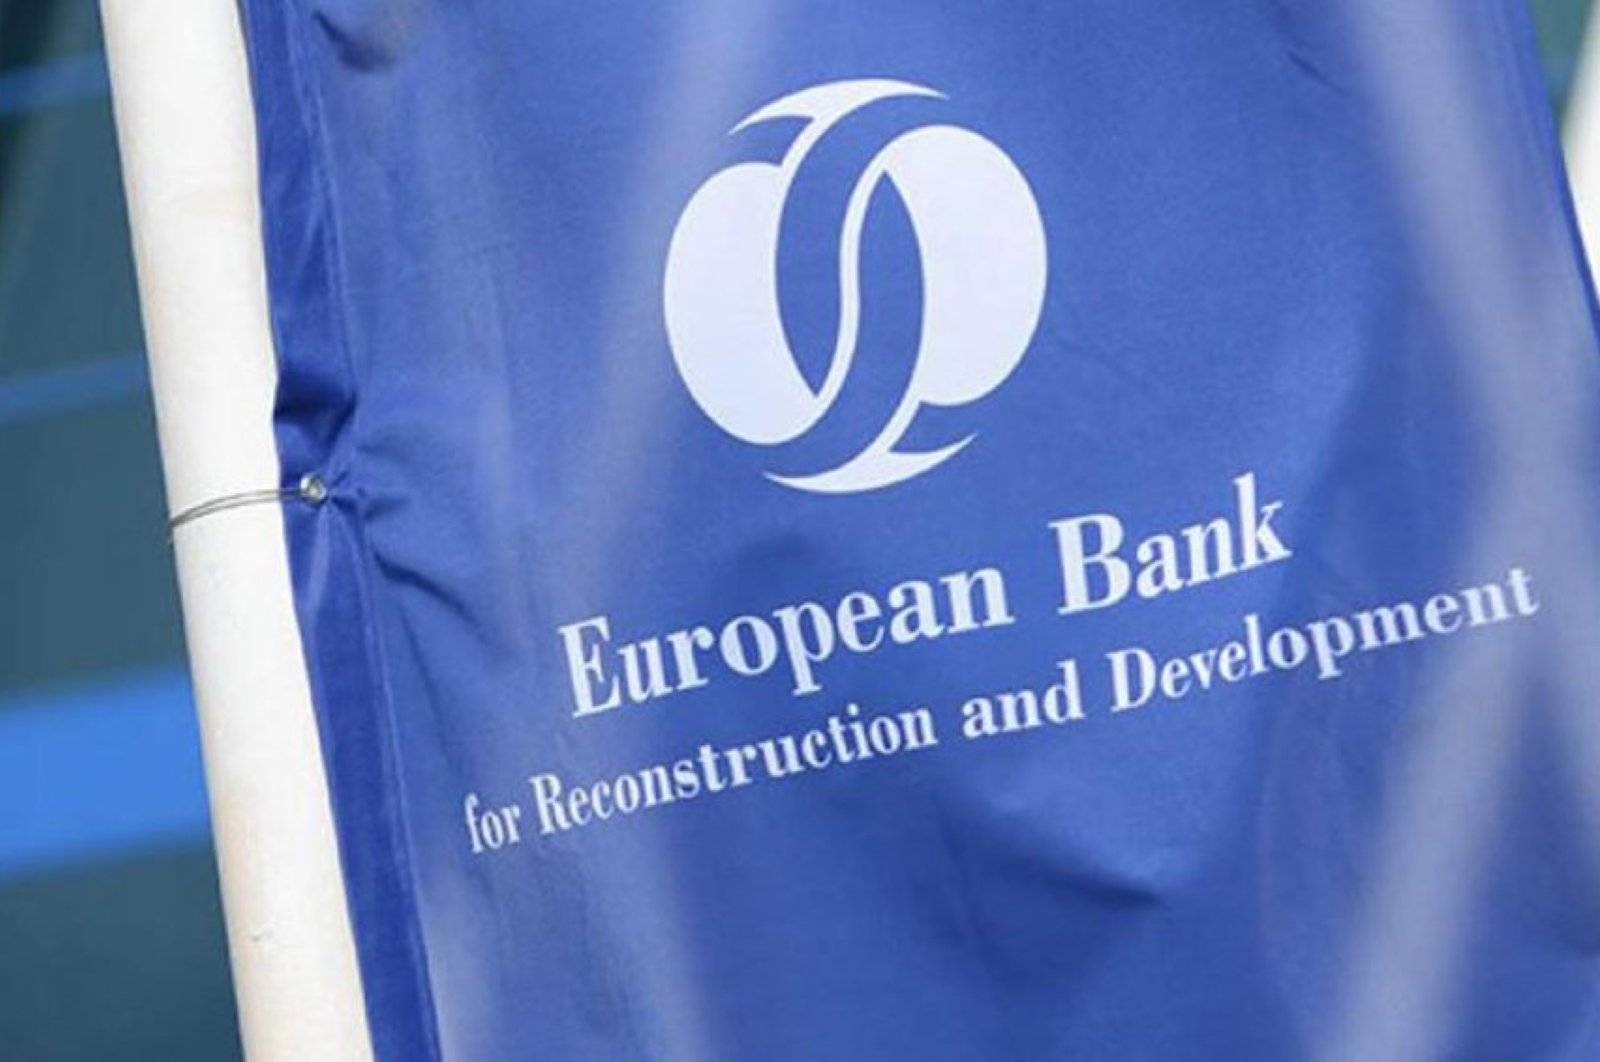 The European Bank for Reconstruction and Development (EBRD) logo is seen in this photo taken April 27, 2019. (File Photo)